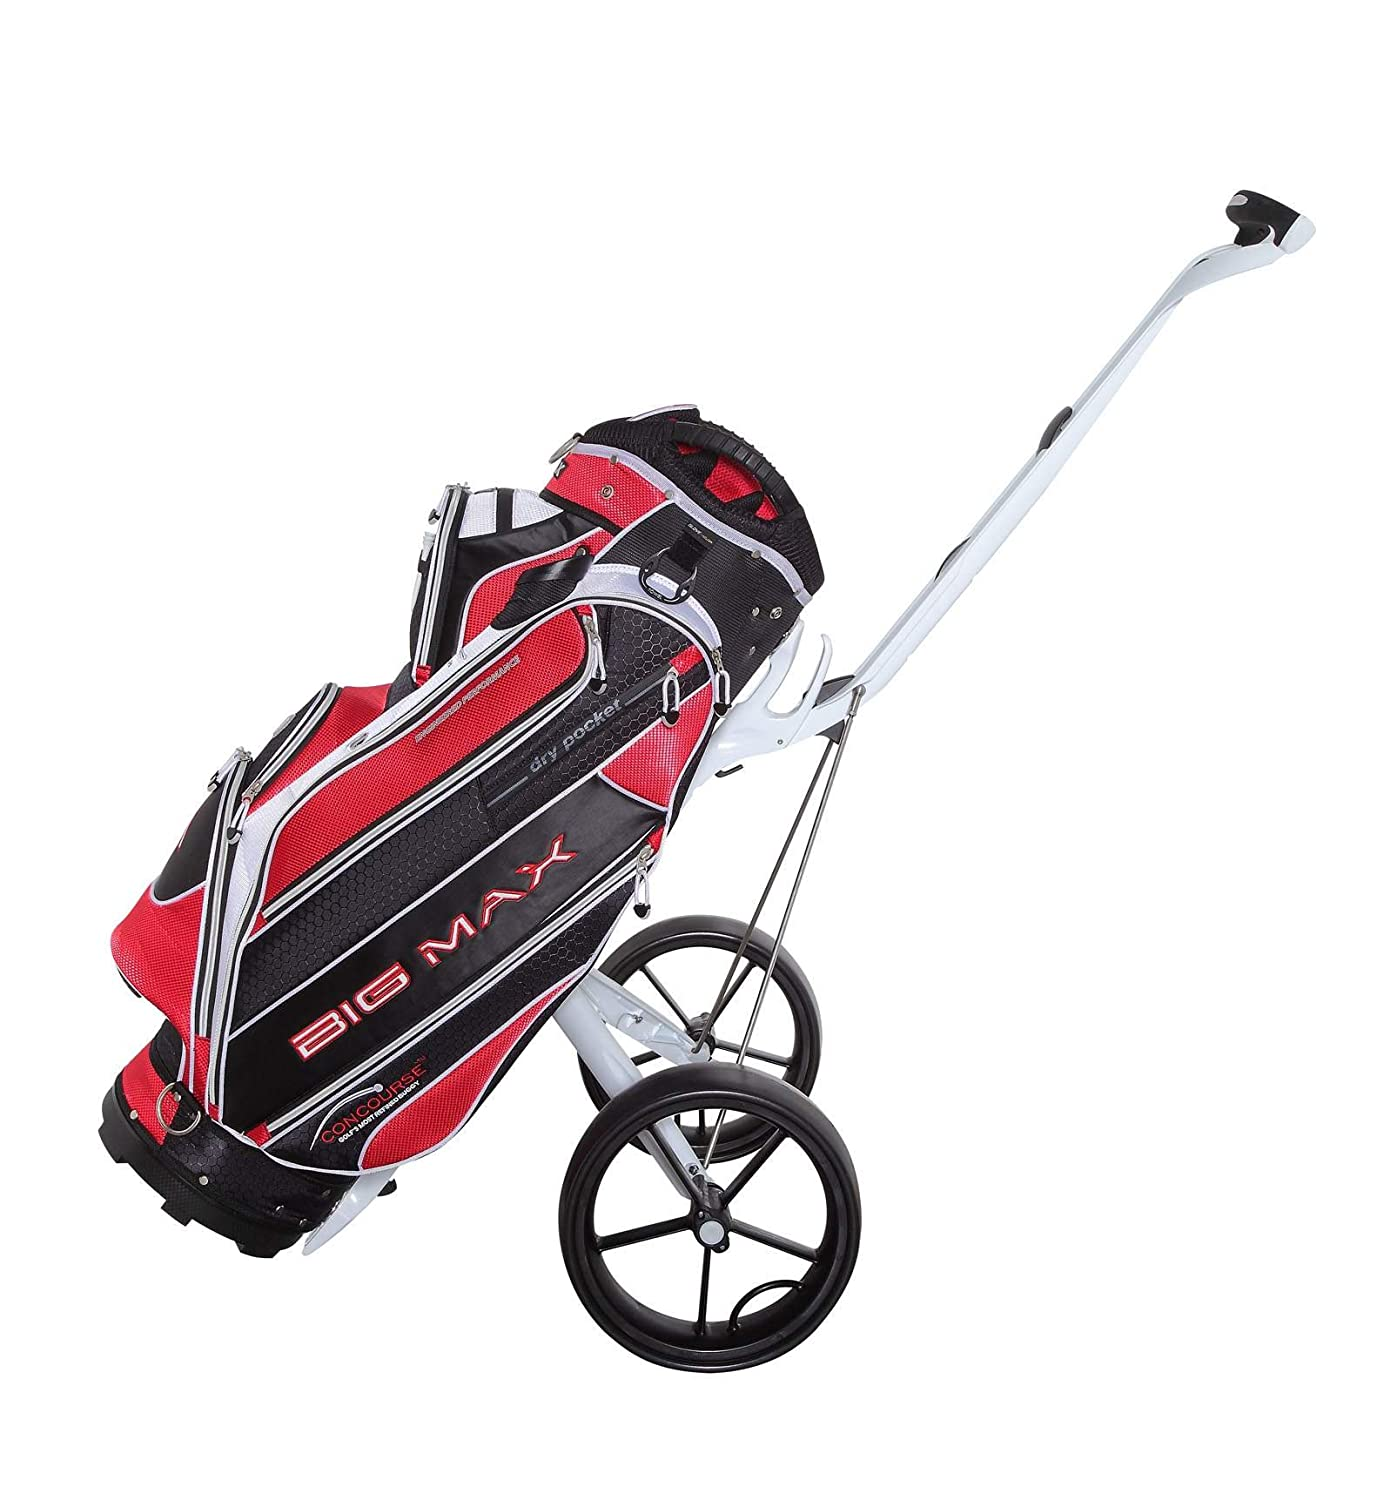 bef760225b59 Big Max Concourse Golf Trolley Bag New Colour: black, white red ...